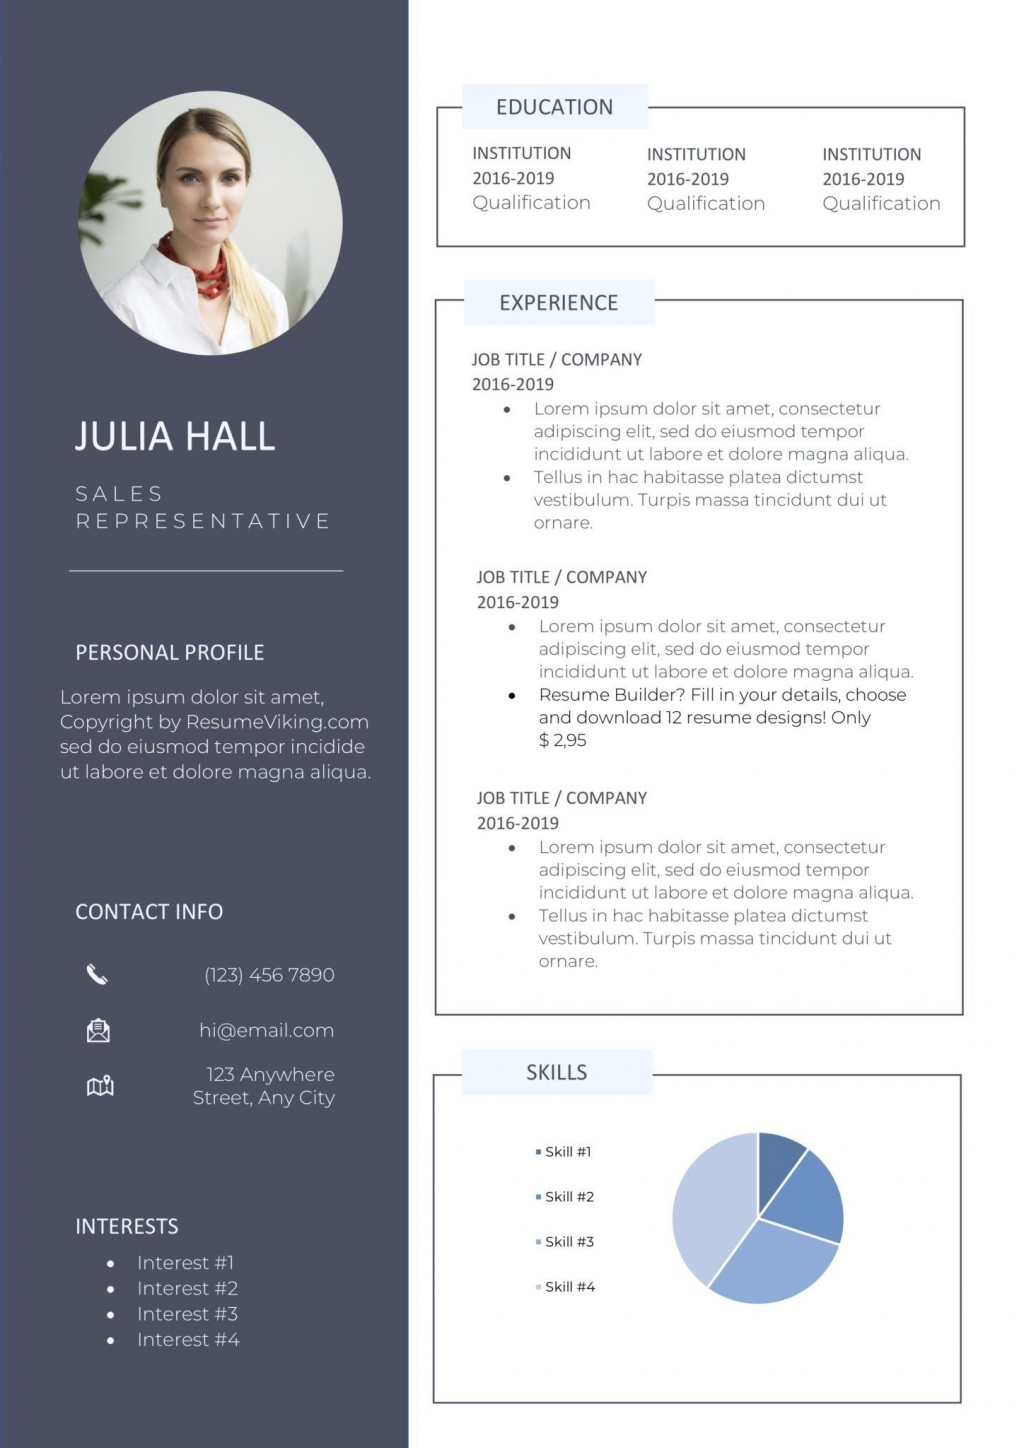 011 Unusual Professional Resume Template Word Free Download Picture  Cv 2020 With PhotoLarge